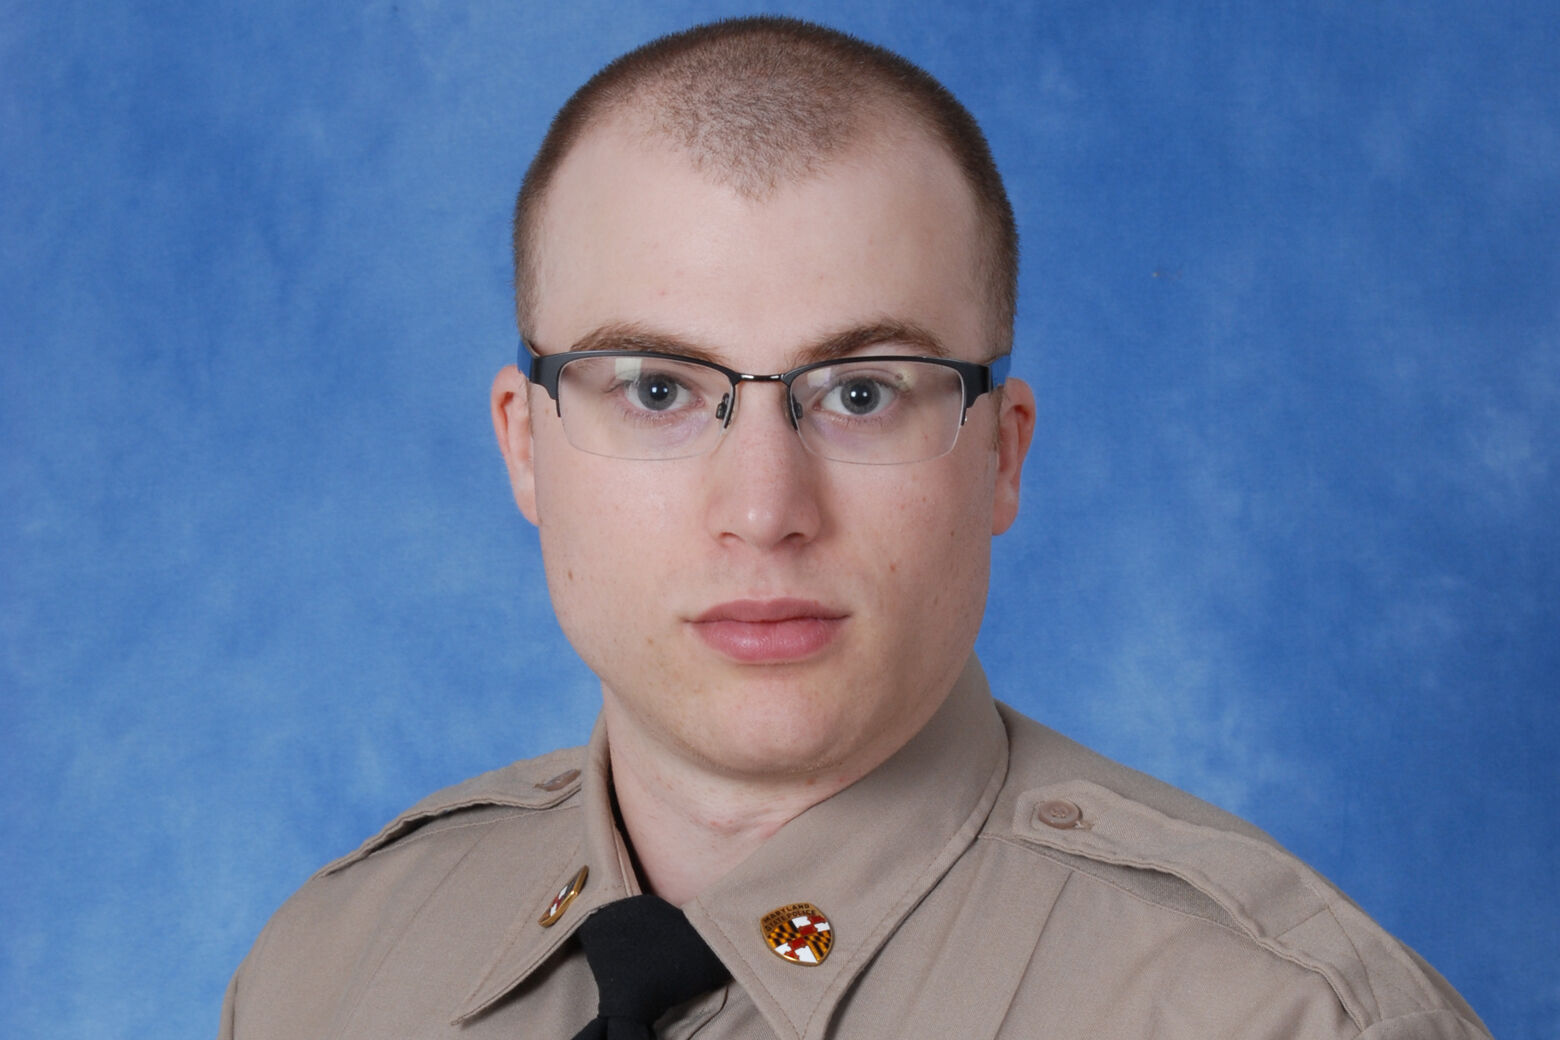 Maryland mourns death of state trooper